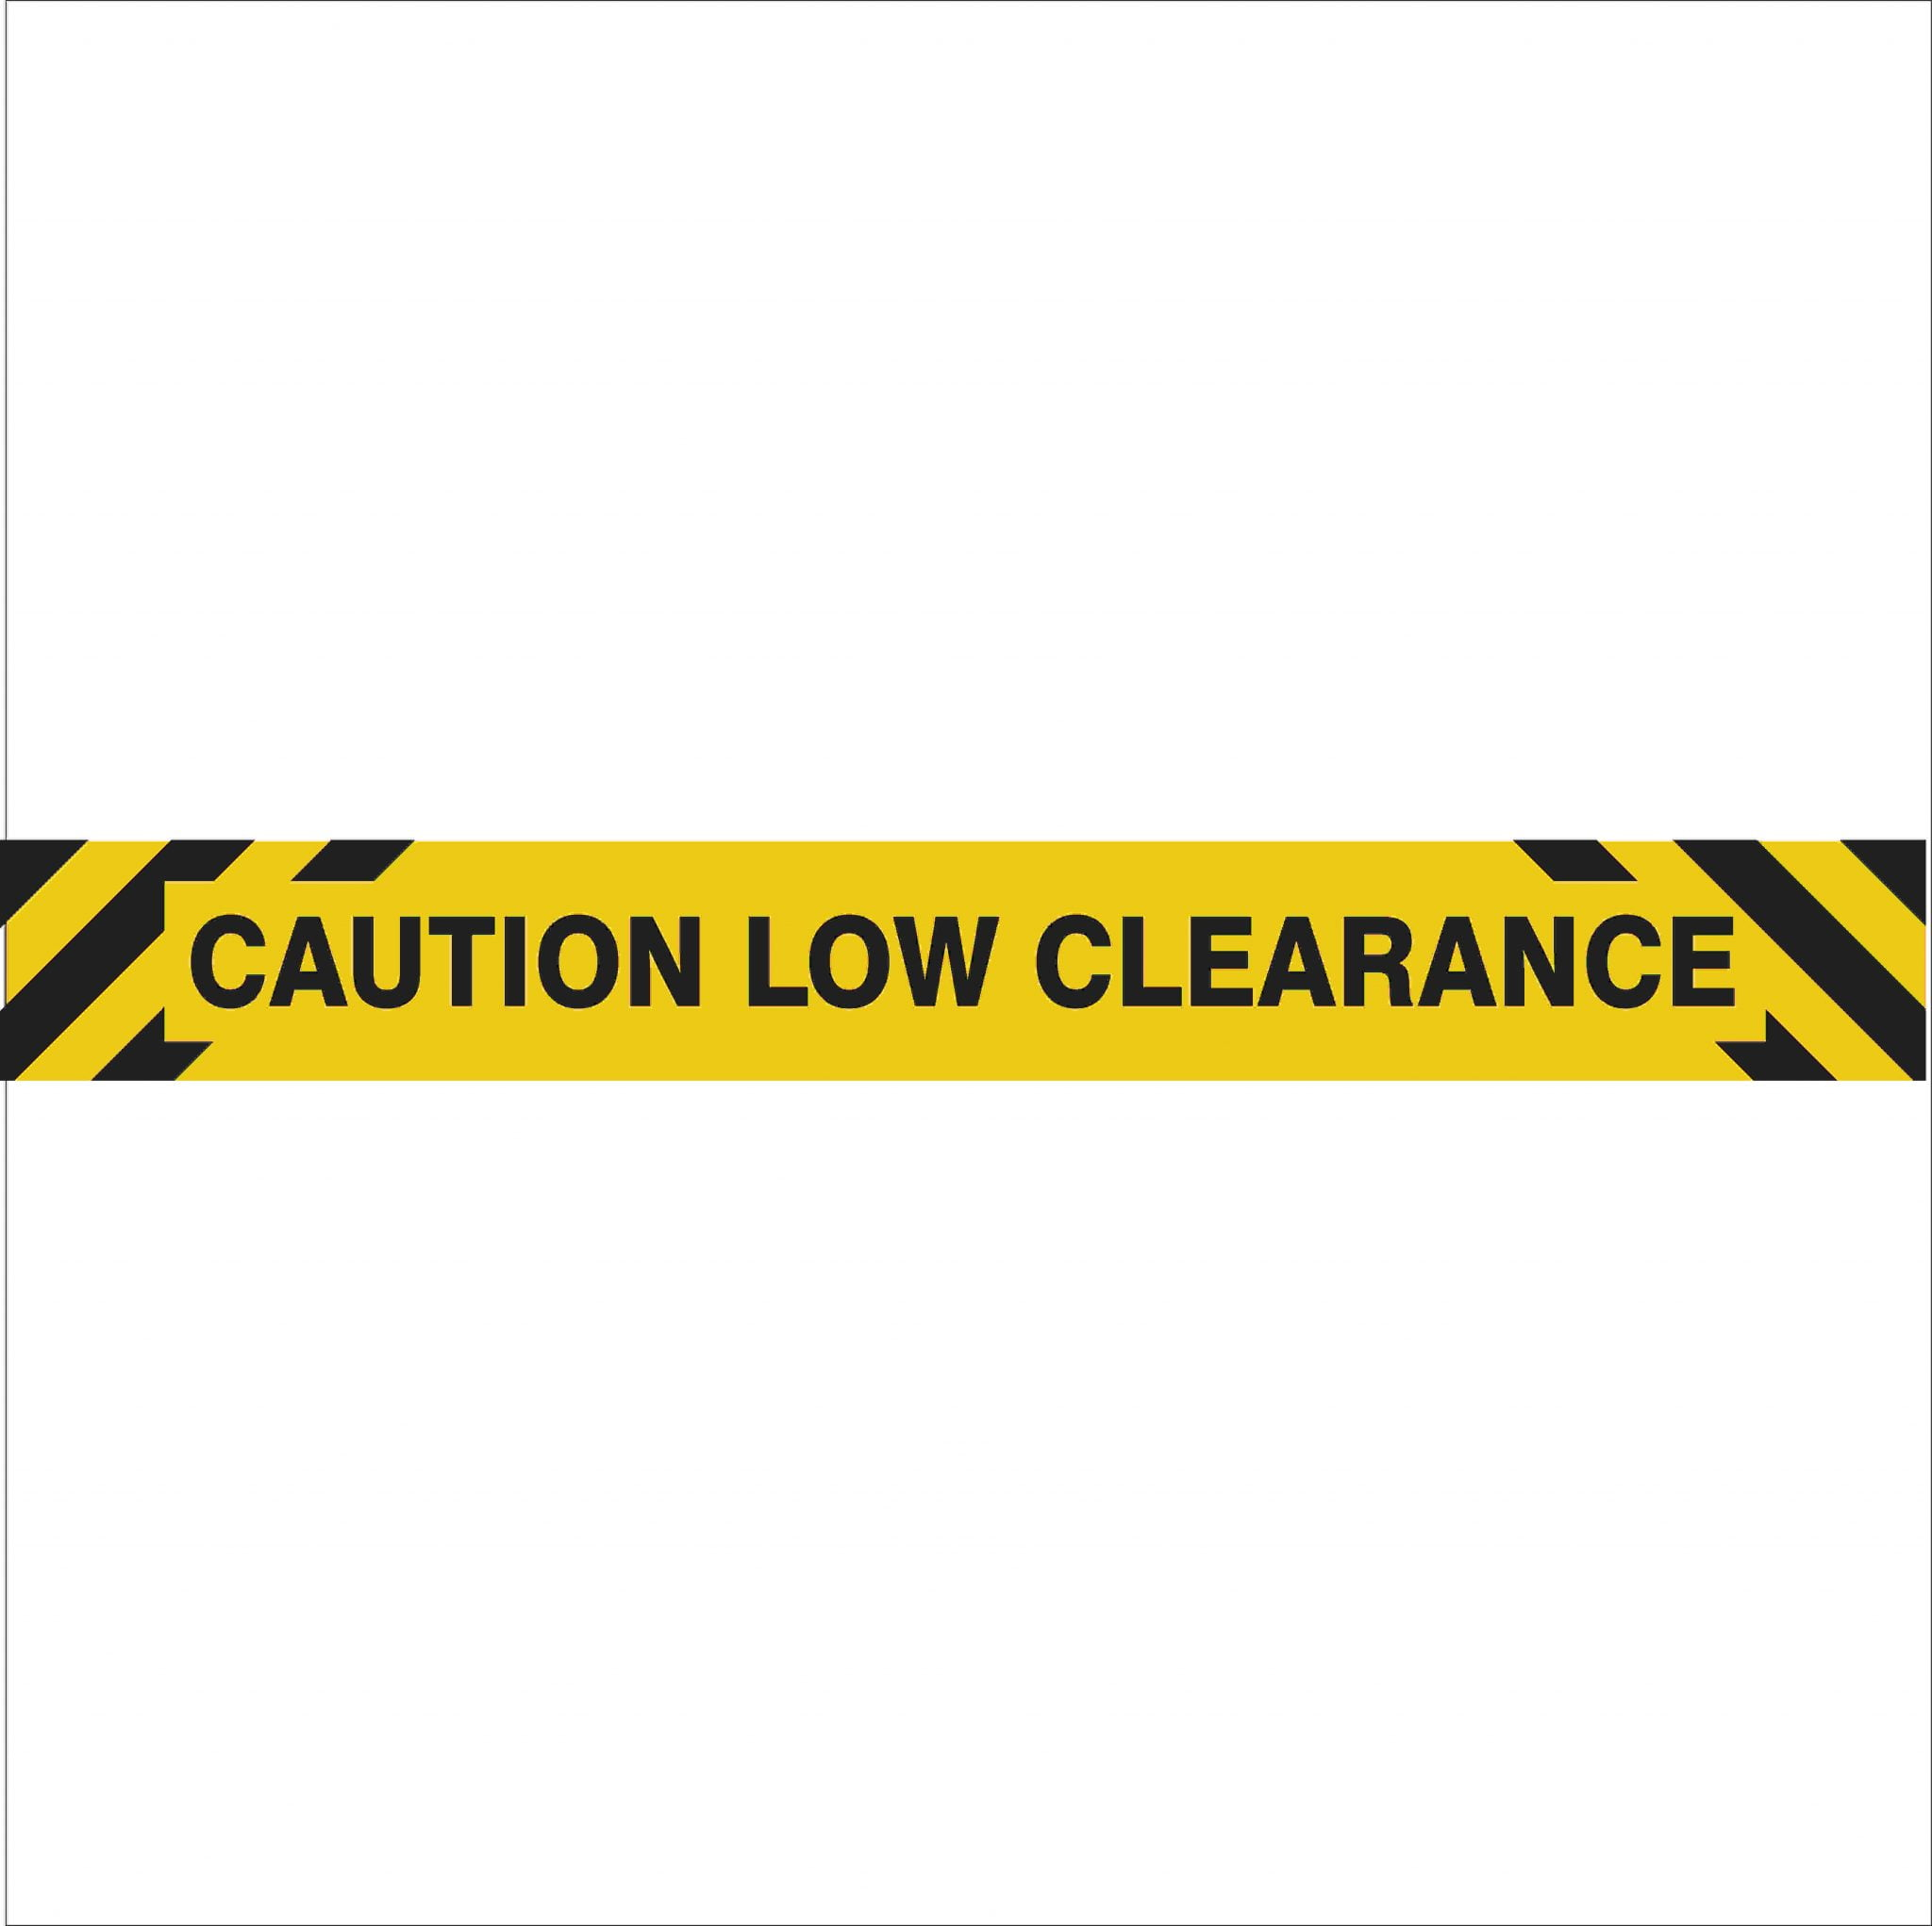 Low Clearance Discount Safety Signs Australia